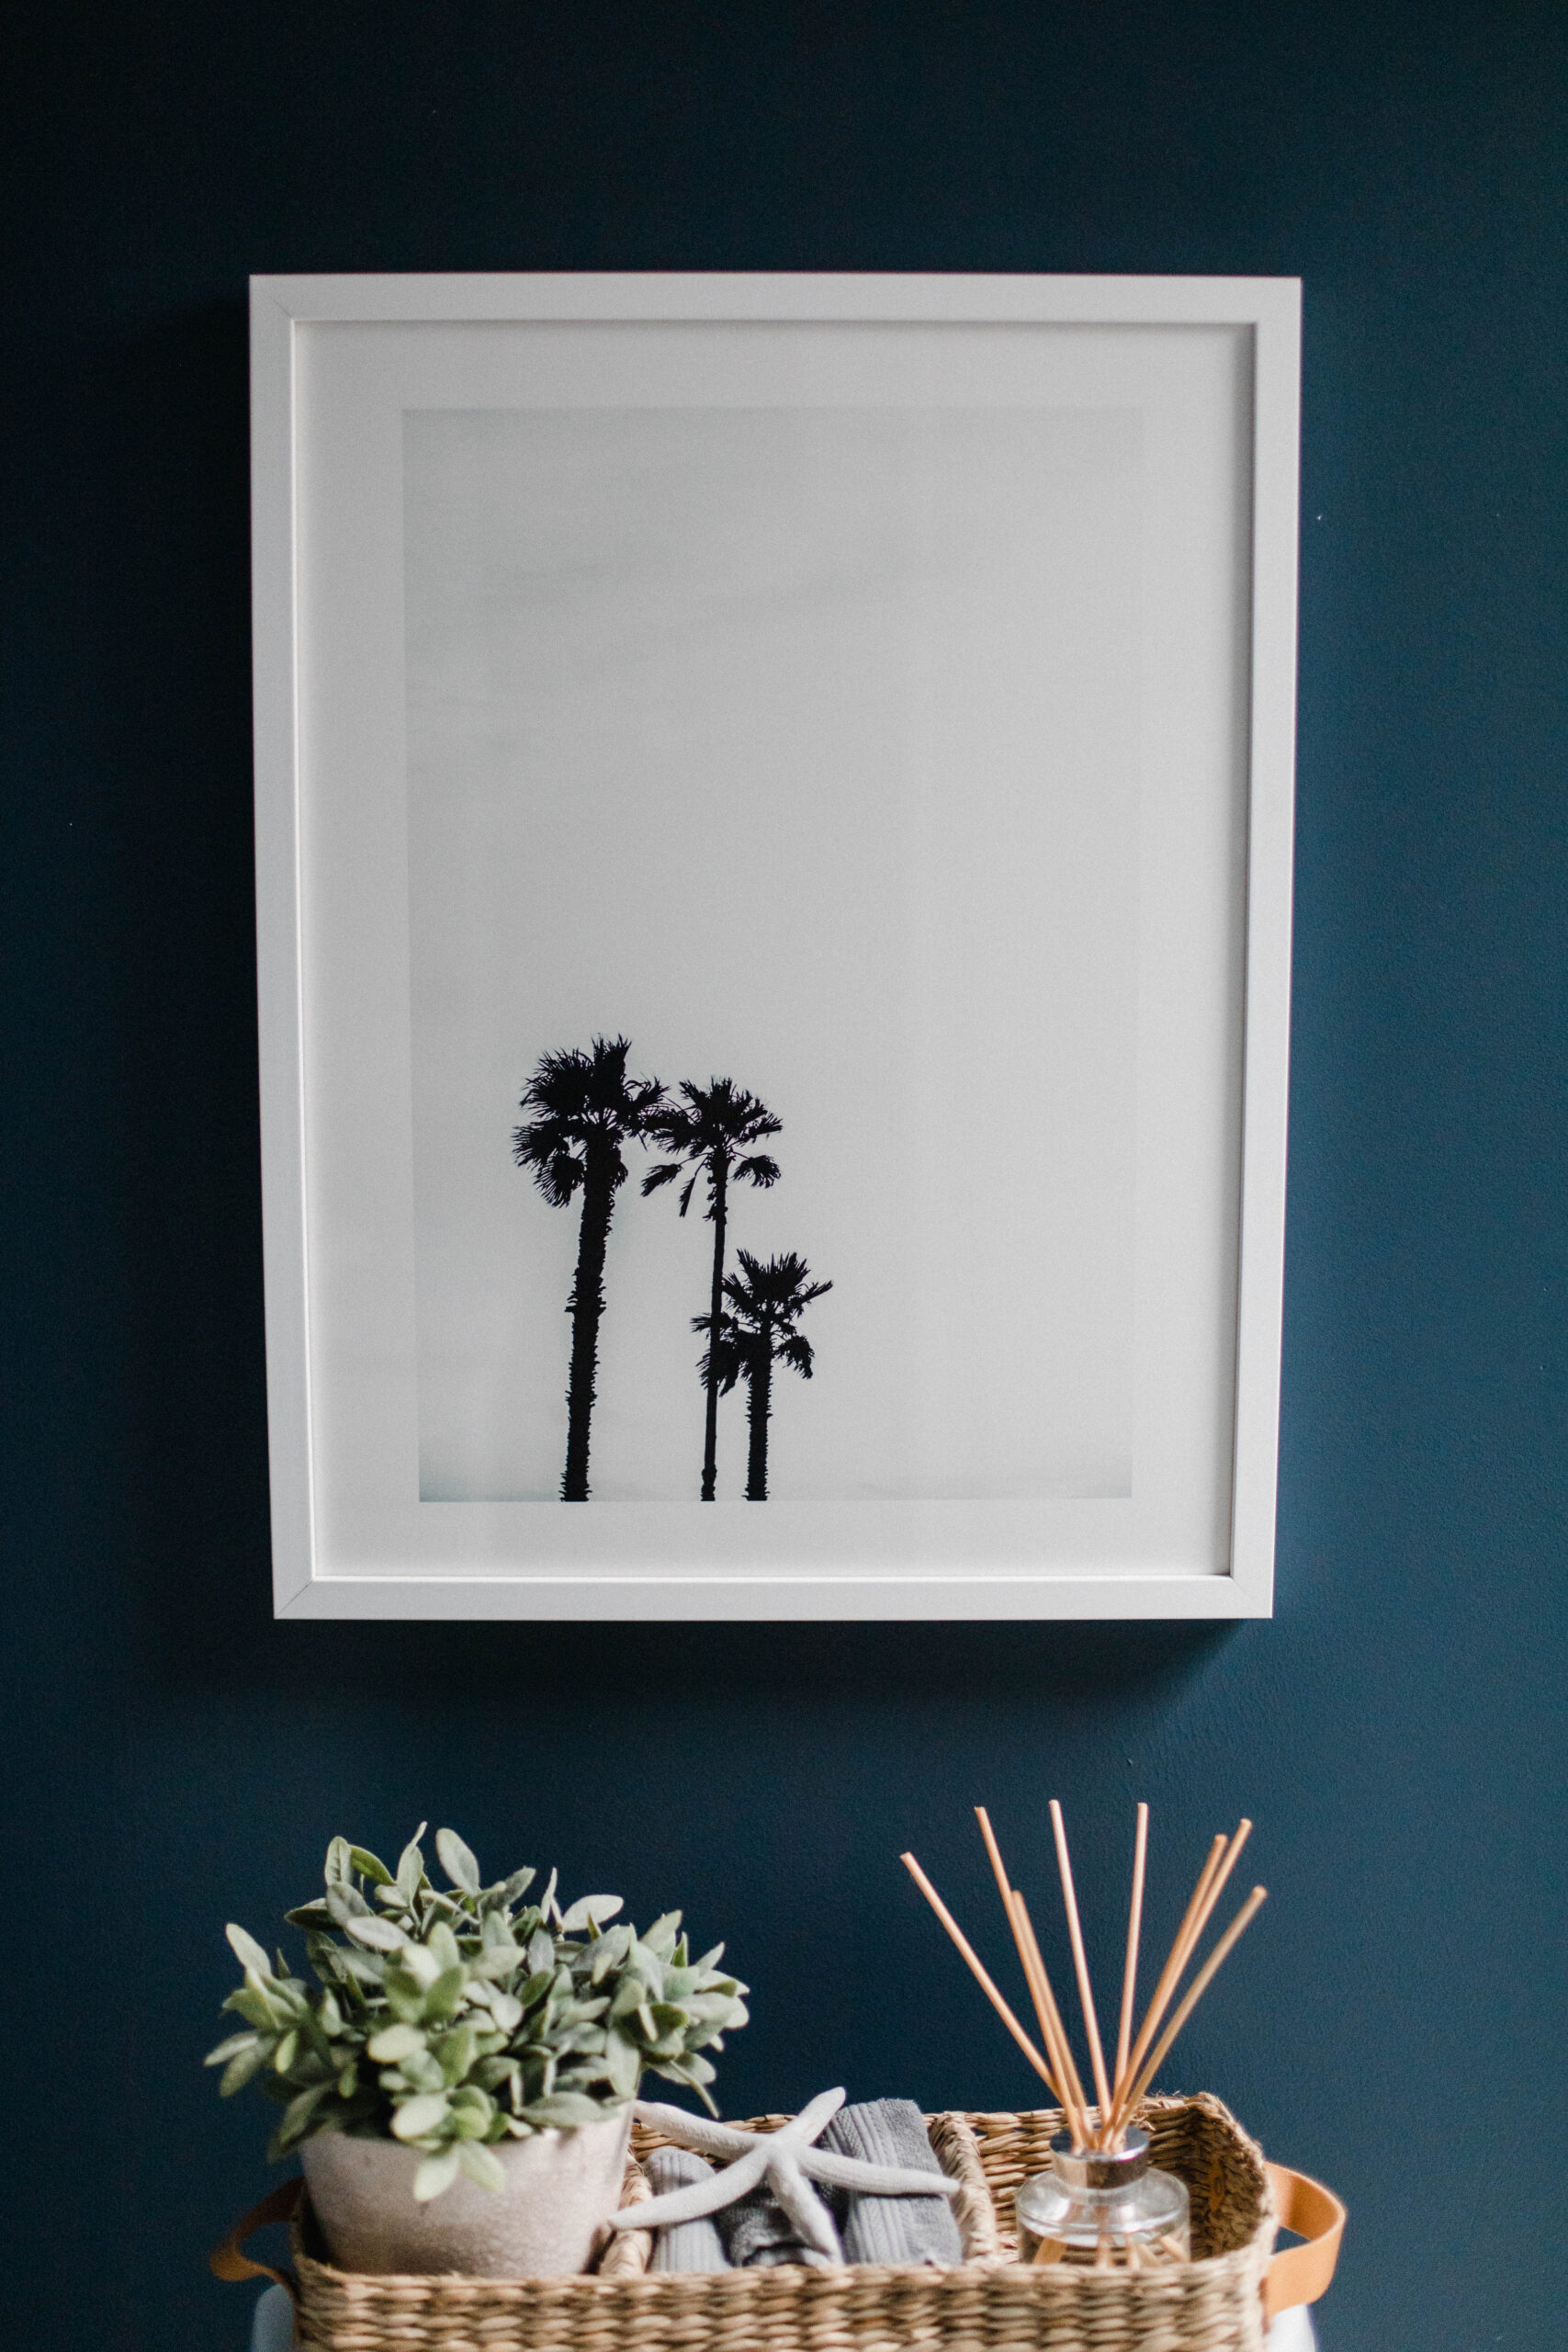 Connecticut life and style blogger Lauren McBride shares the coastal artwork in her modern coastal inspired home.